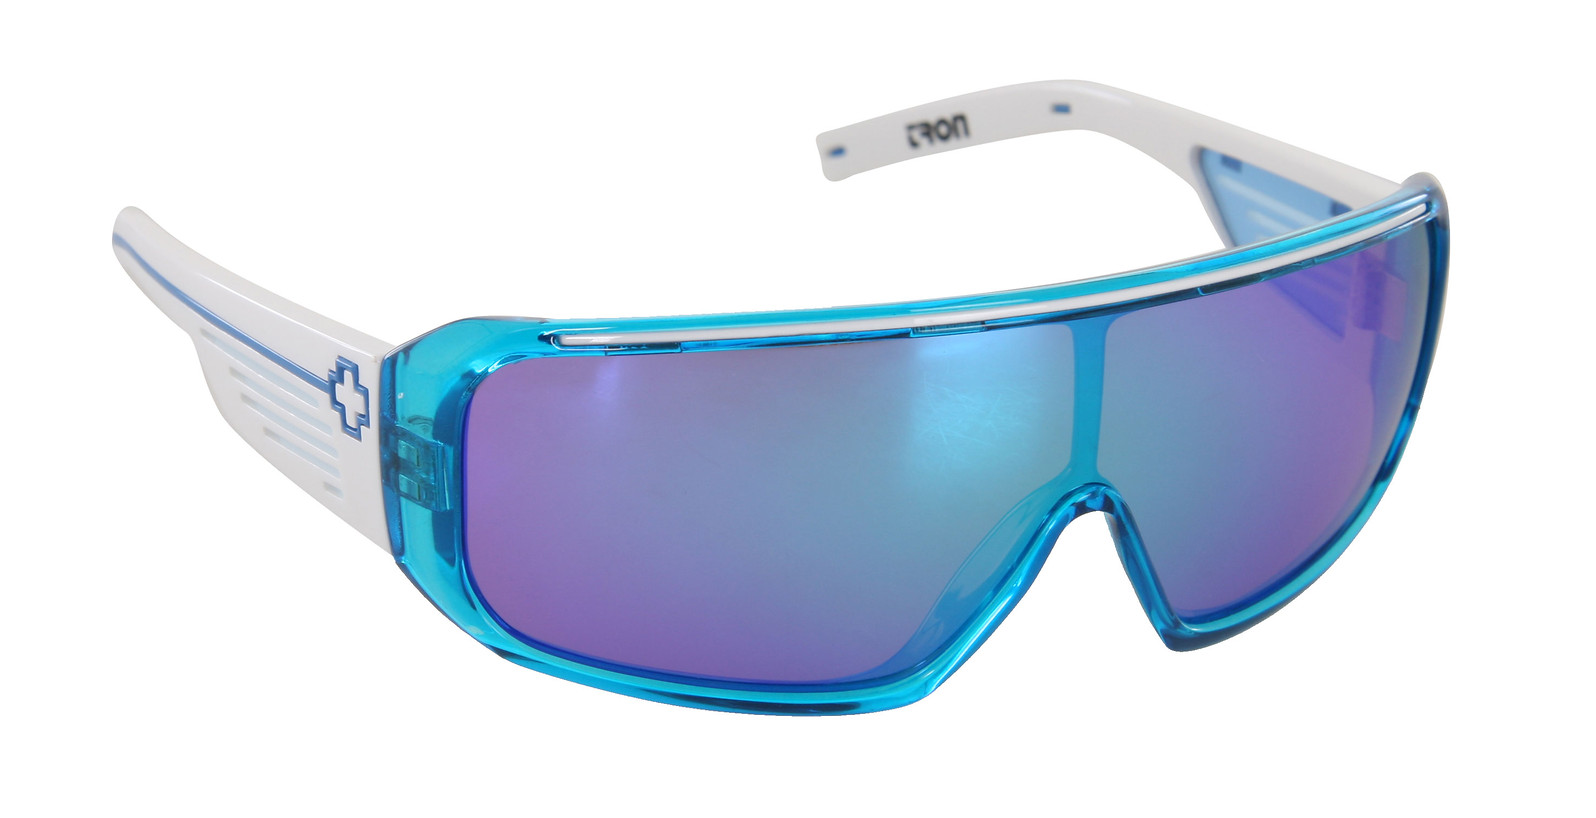 Spy Optic Spy Tron Sunglasses Translucent Cyan W/ Wht Gry W/ Mult Layer Grn Lens  spy-tron-sngls-cyanwhtgrygrn-10.jpg